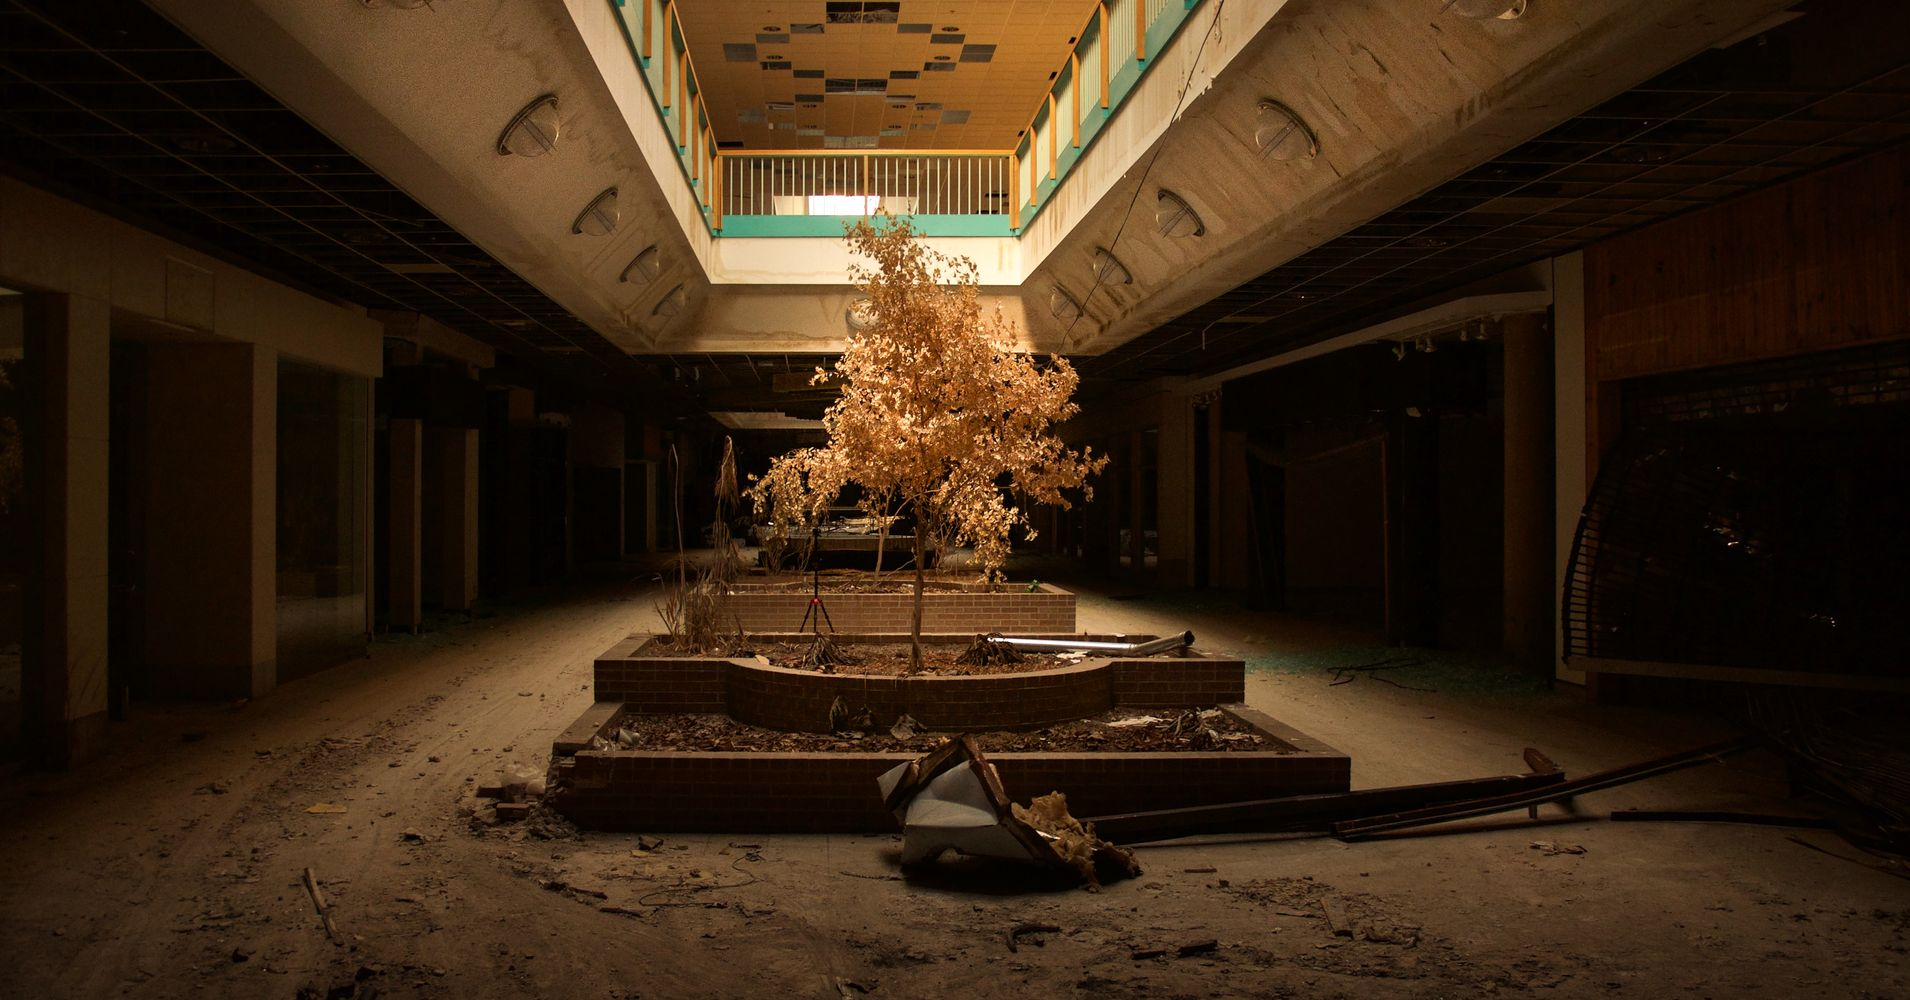 Abandoned shopping malls pictures Photos of